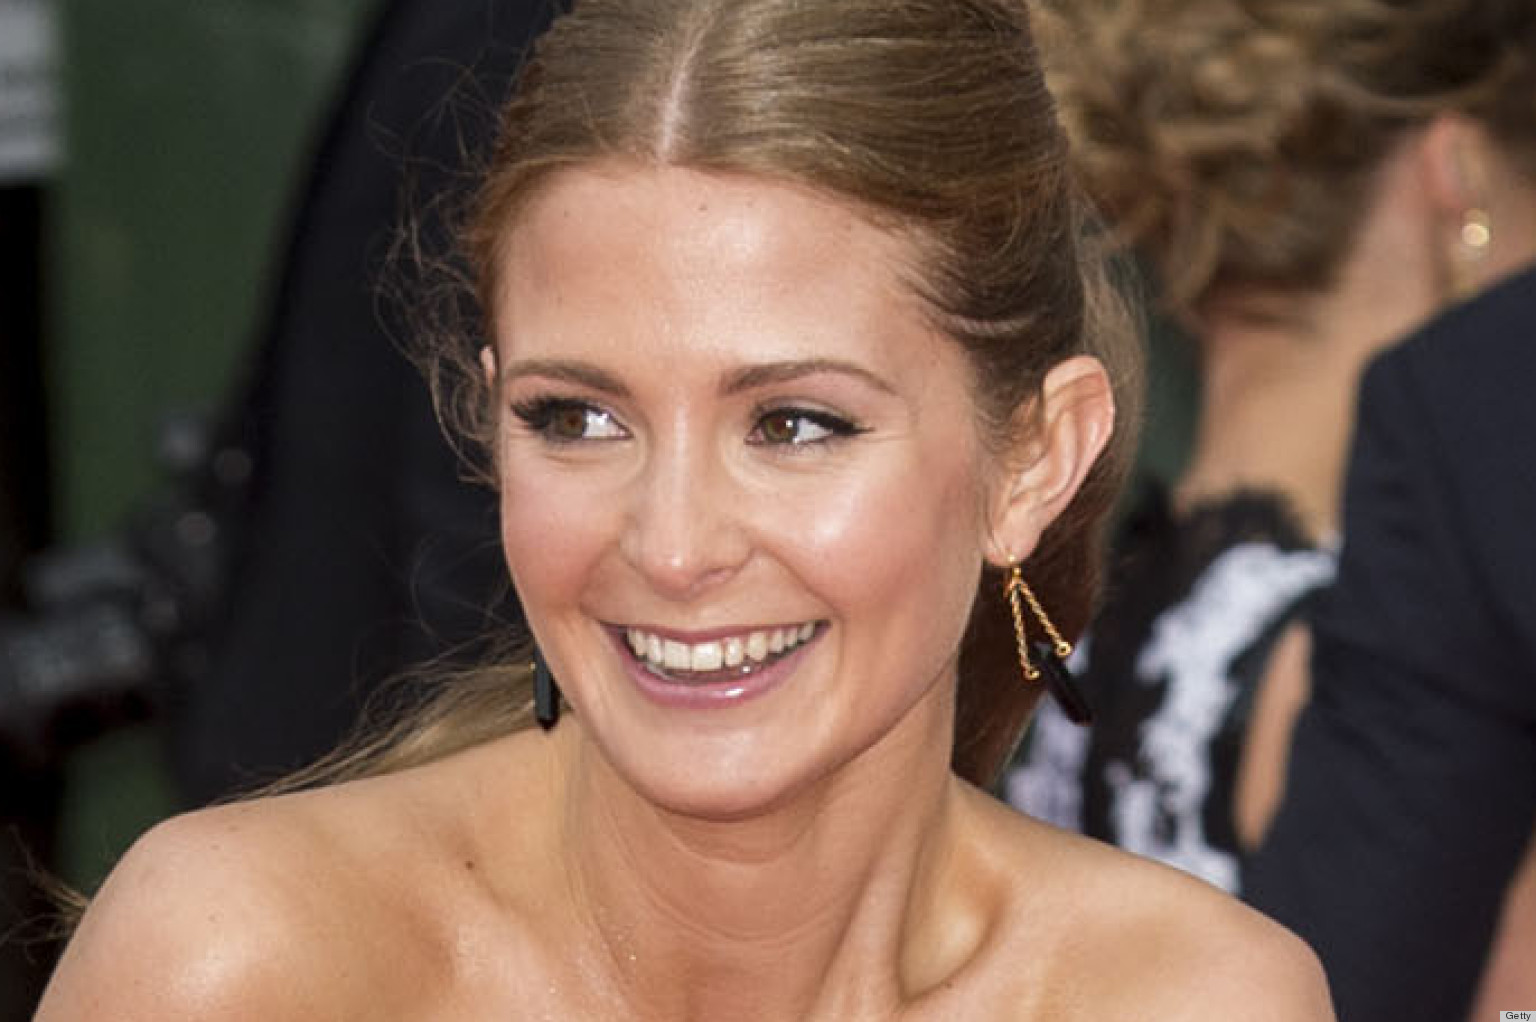 PHOTOS: Millie Mackintosh Has A Marilyn Monroe Moment At The BAFTAs